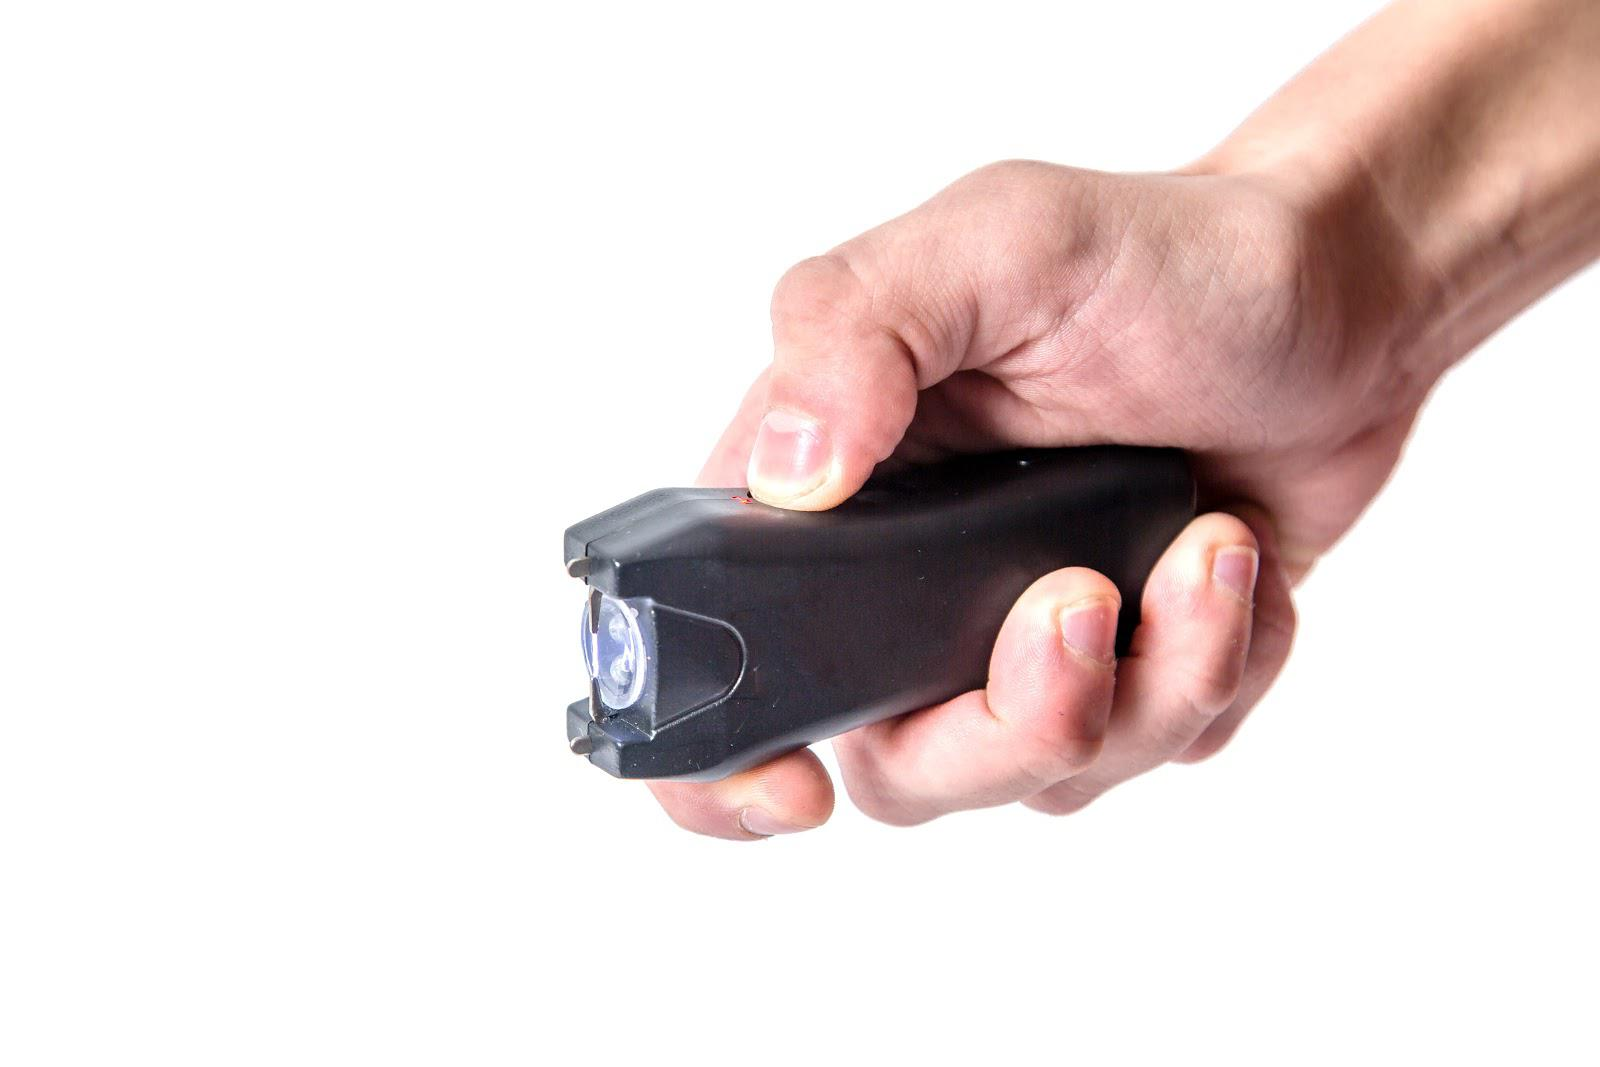 What is a taser torch and what is the penalty for bringing one into the UK